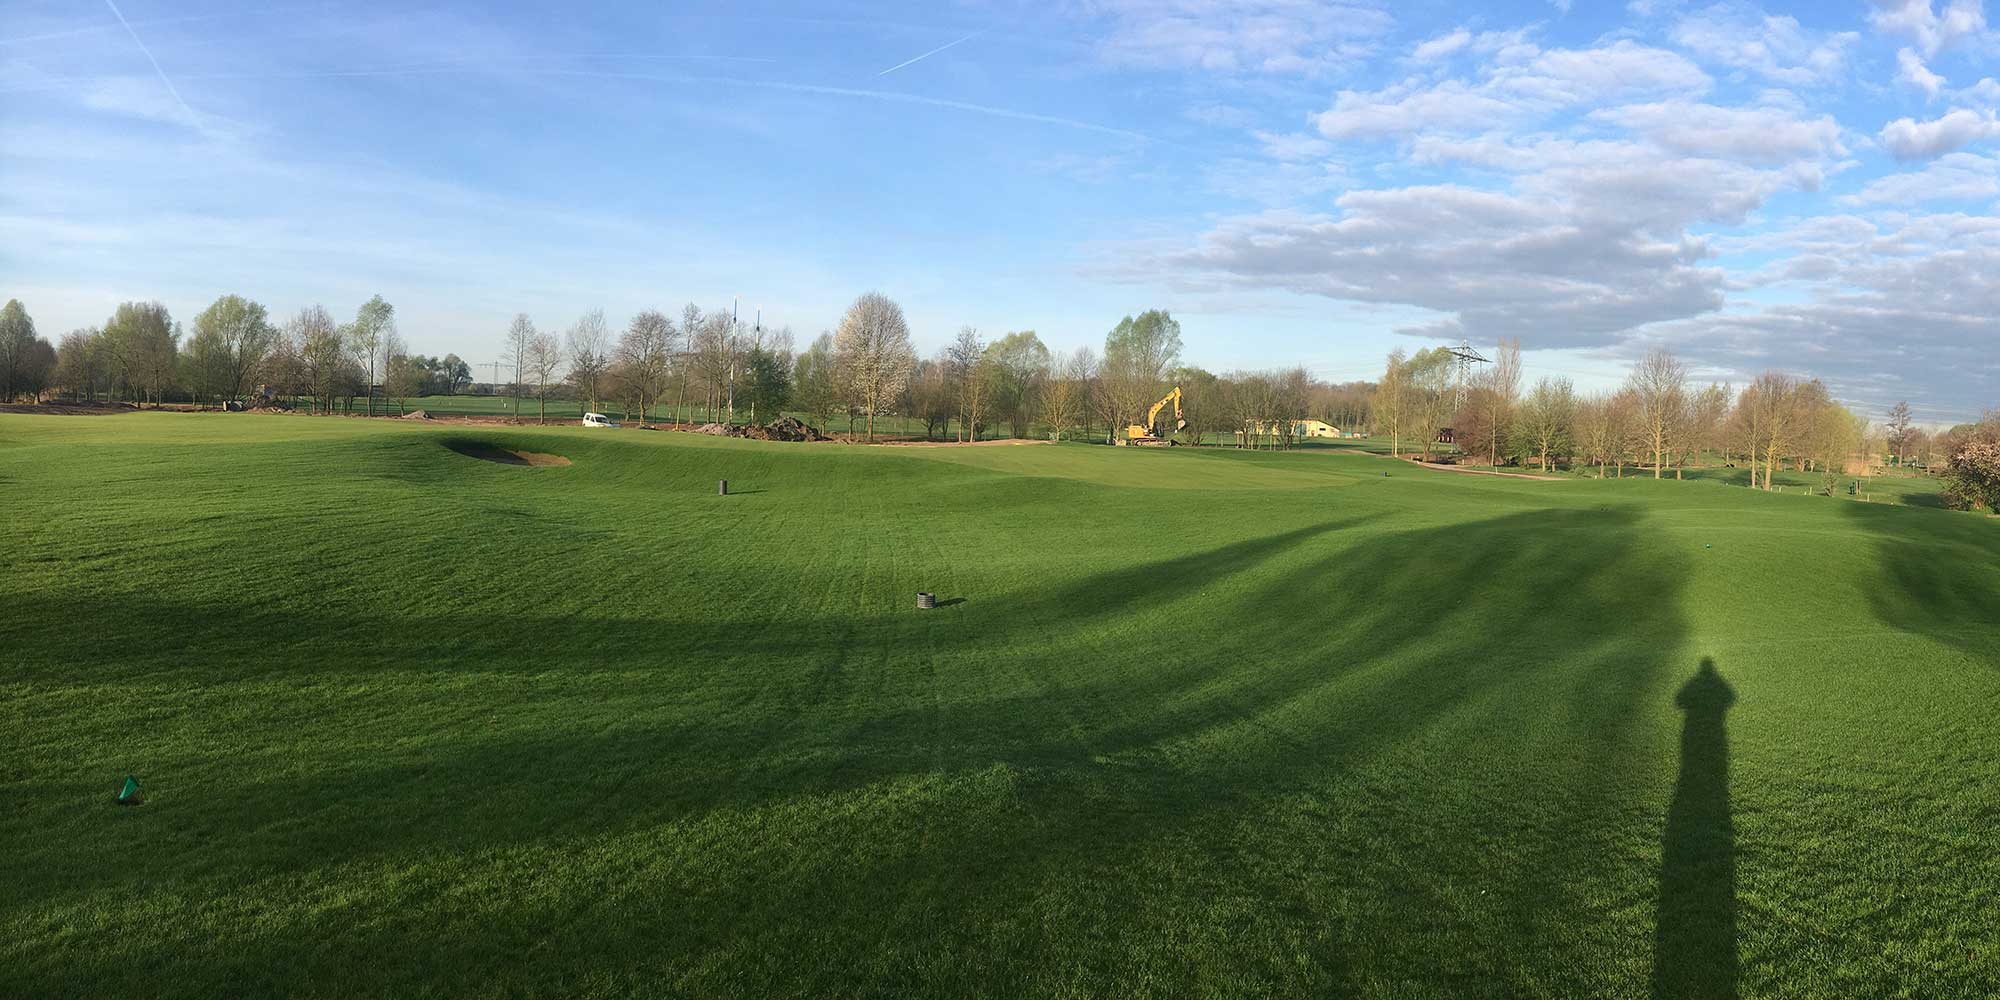 Tees, Approaches and Fairway Turf Photo